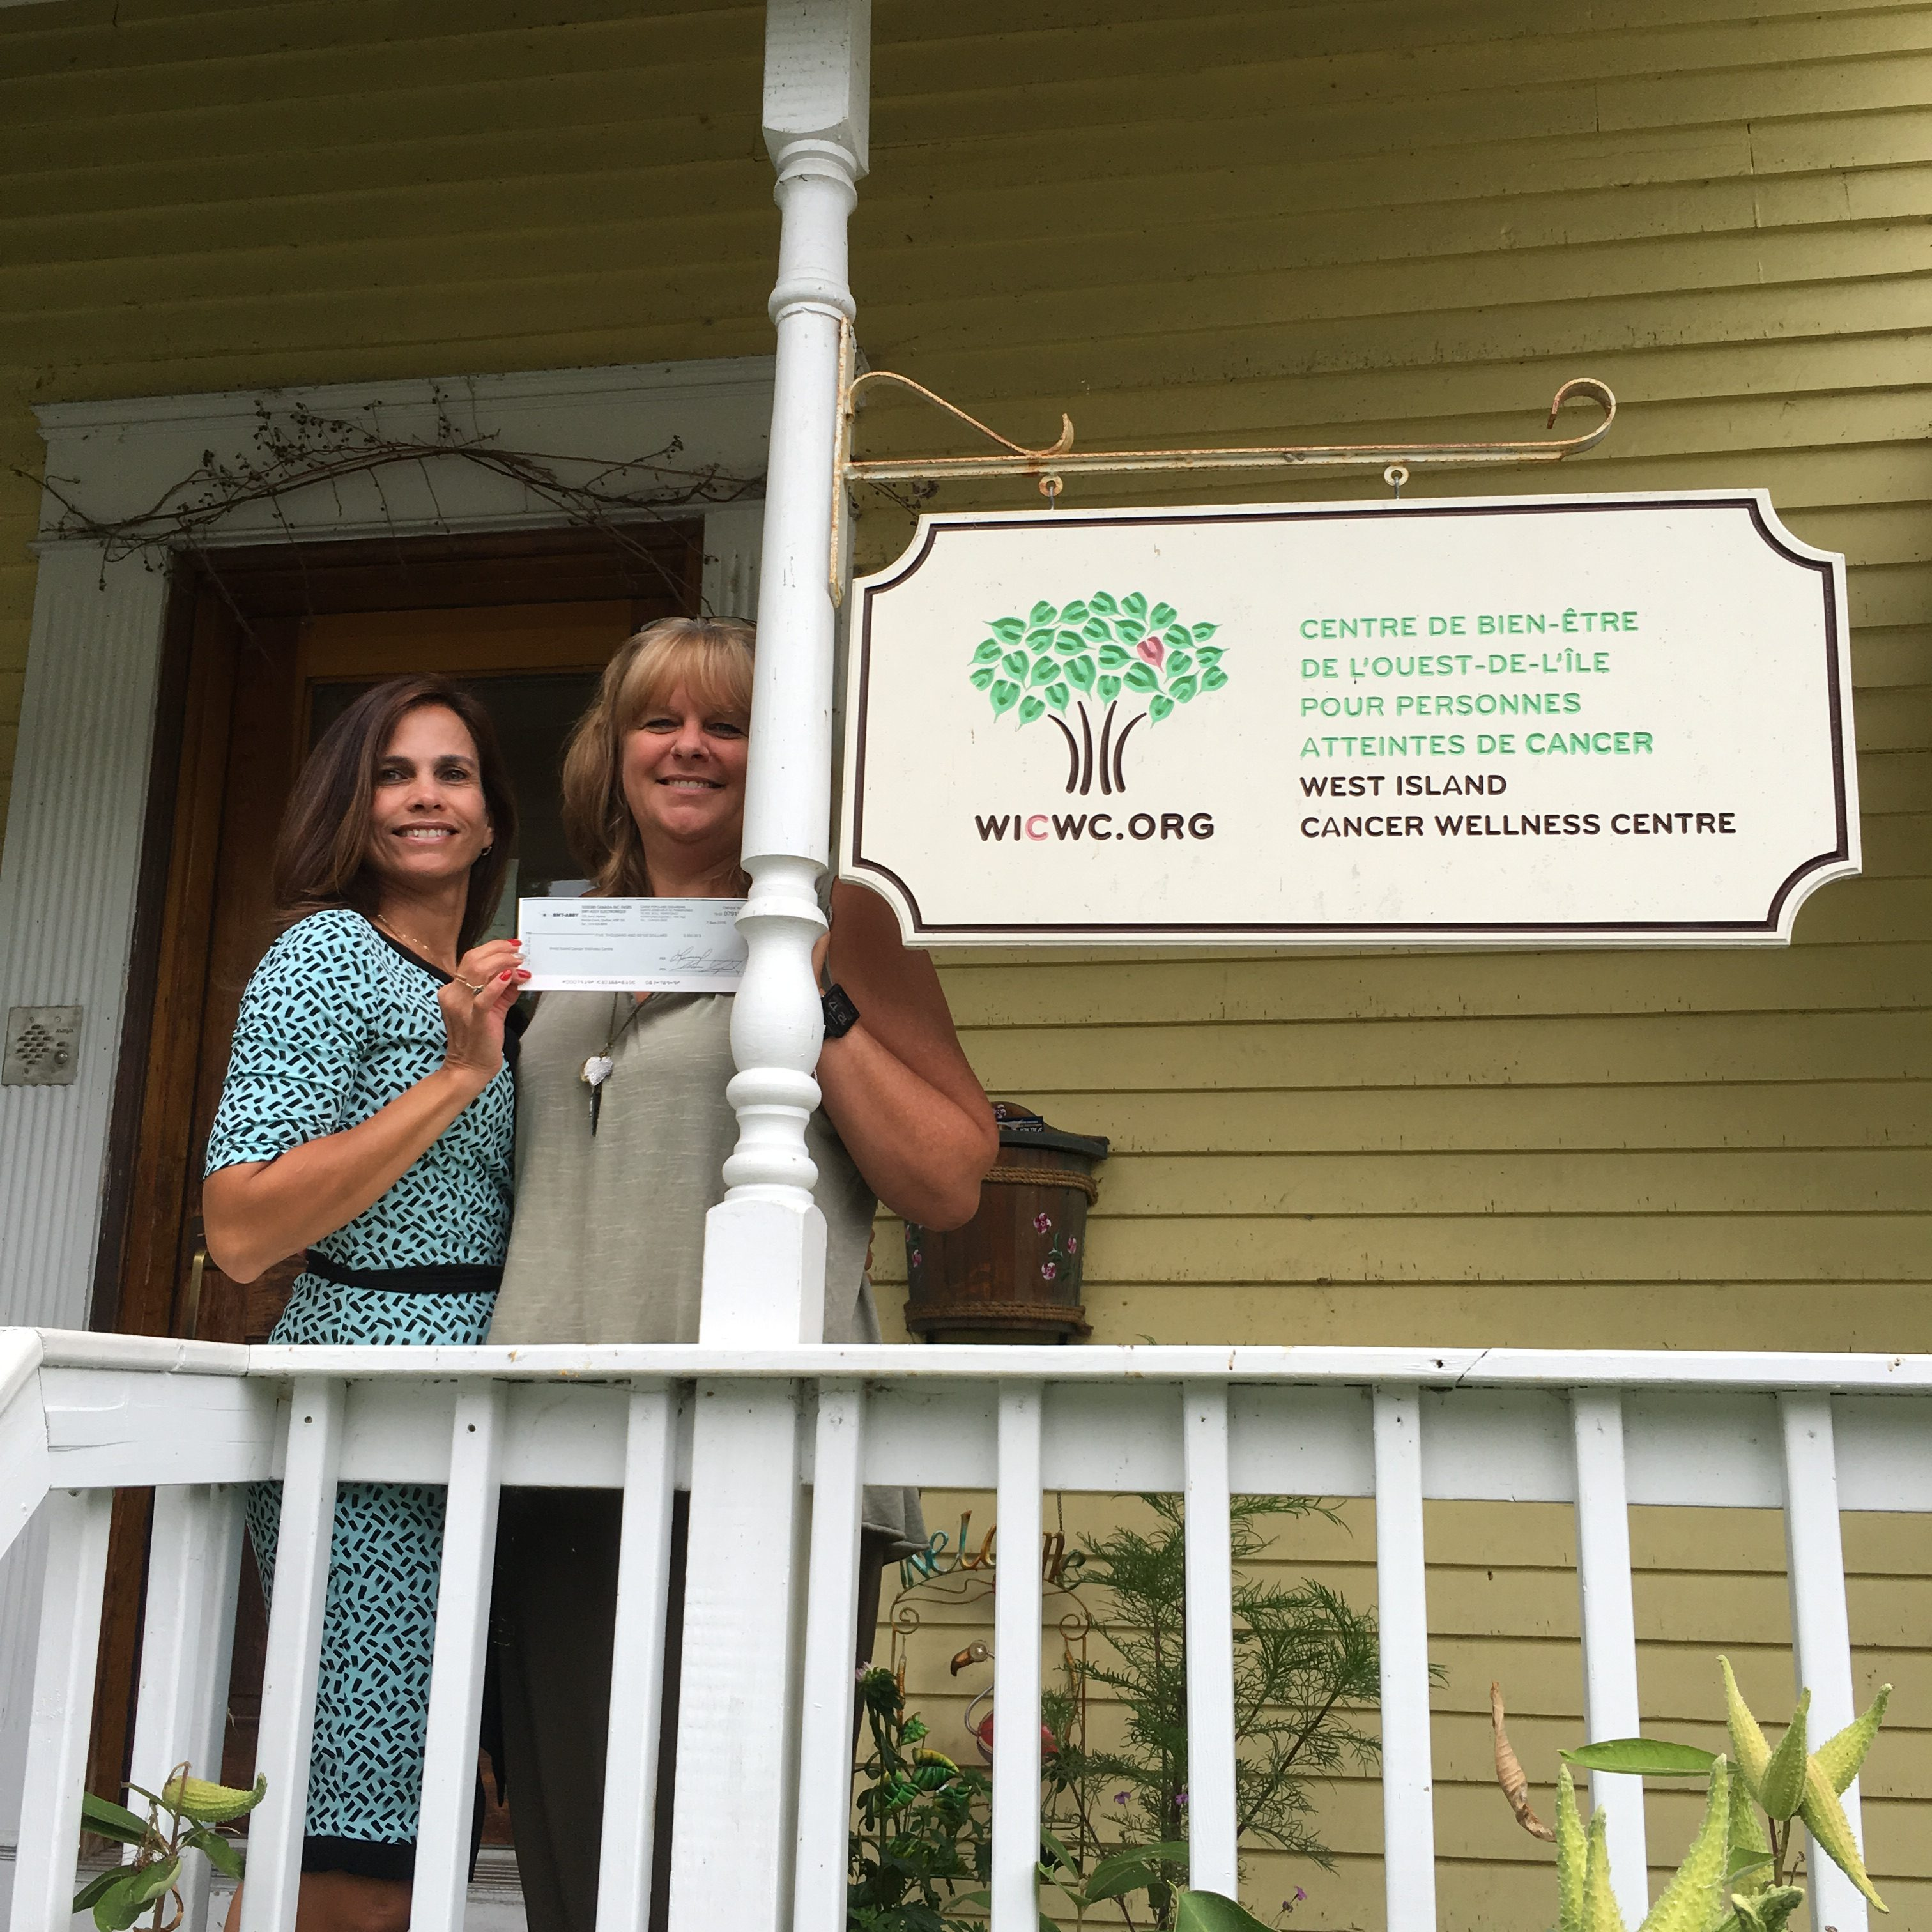 SMT-ASSY Supports The West-Island Cancer Wellness Centre